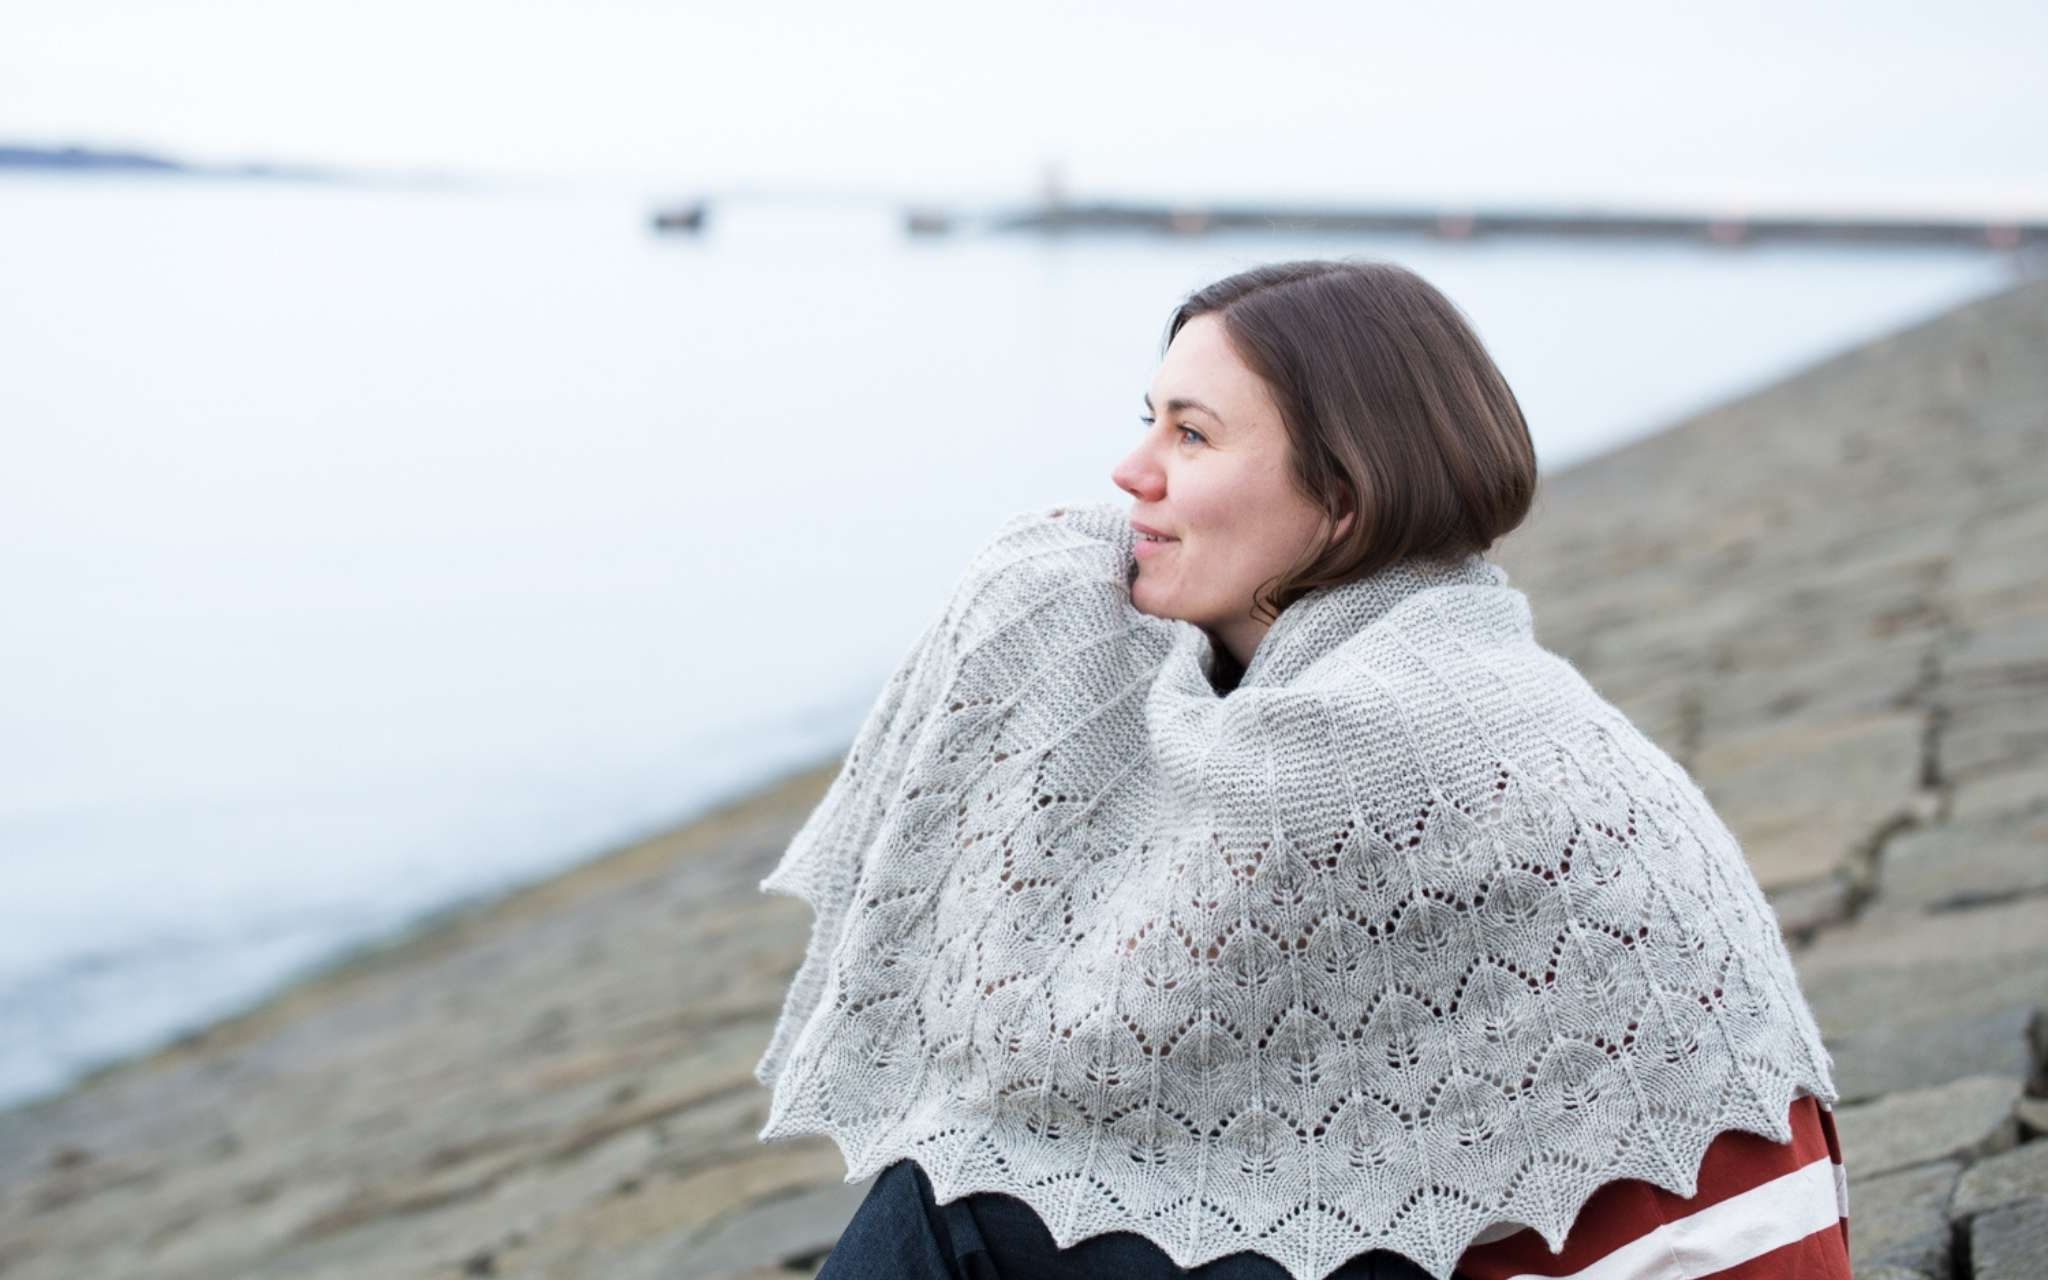 A white woman with brown hair sits huddled on a beach, looking out to sea. She has a large grey shawl wrapped around her and is resting her head in her hands, which are underneath the shawl.